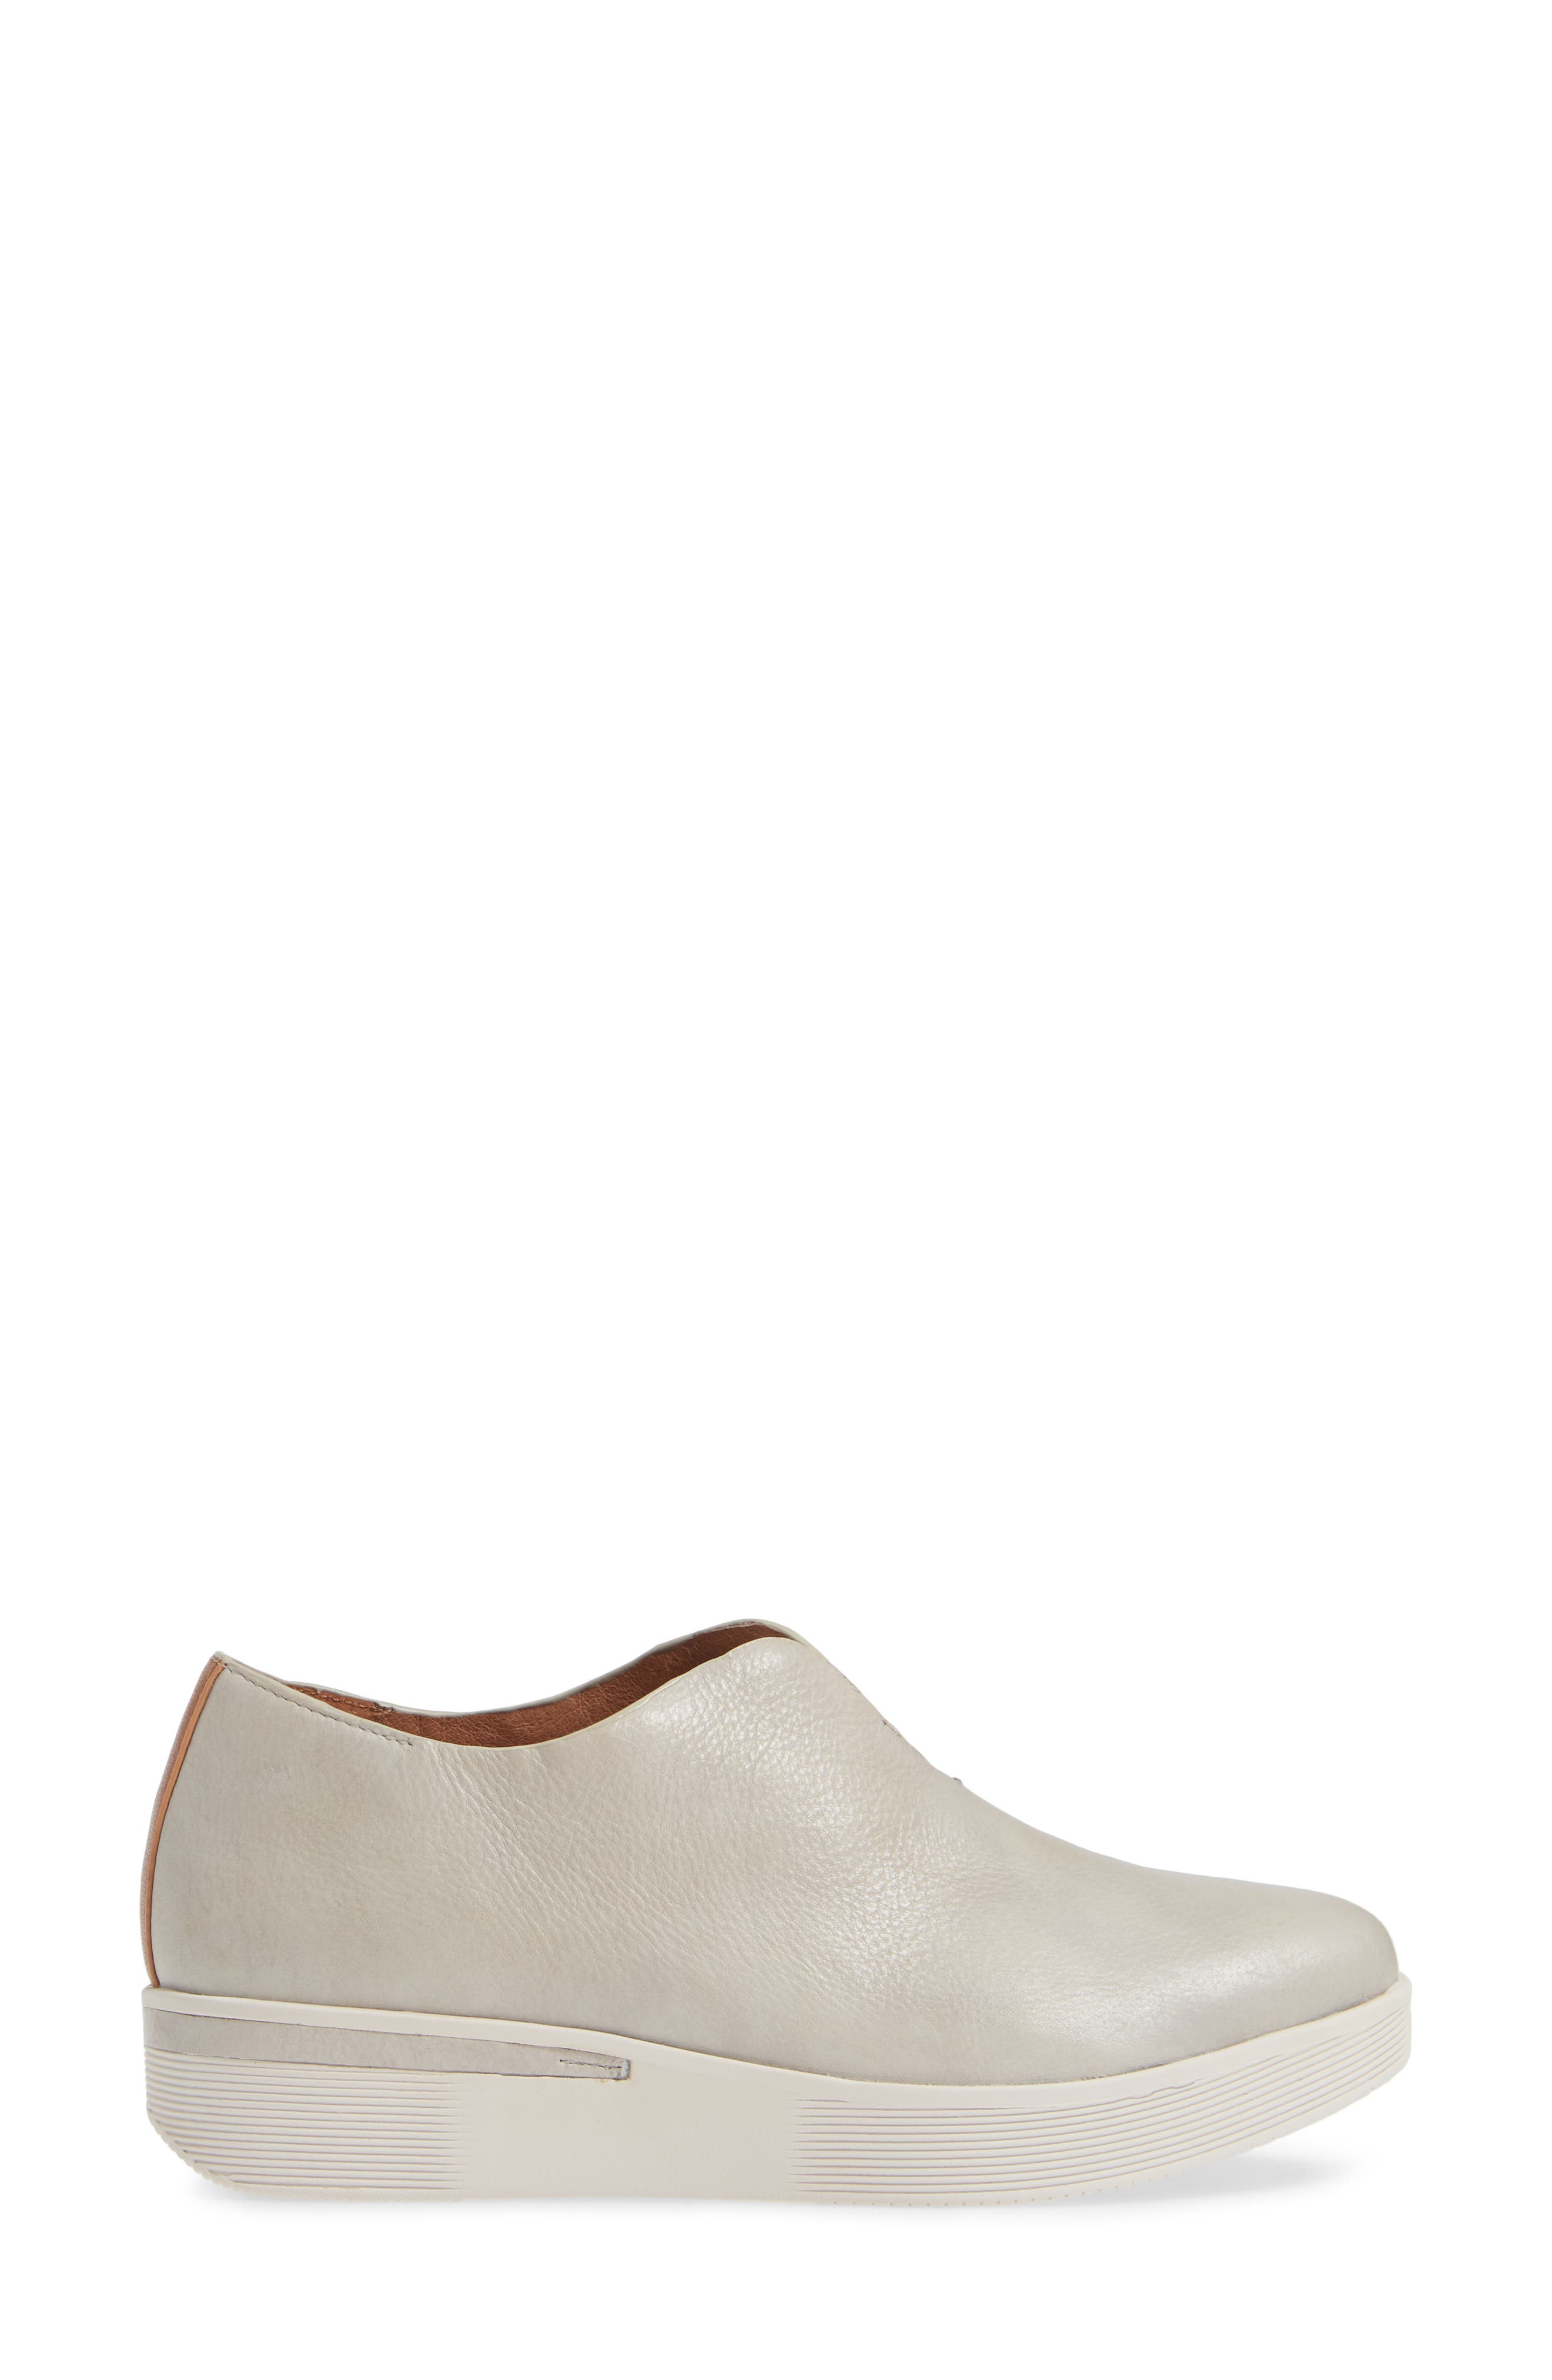 GENTLE SOULS BY KENNETH COLE, Hanna Slip-On Sneaker, Alternate thumbnail 3, color, LIGHT GREY LEATHER